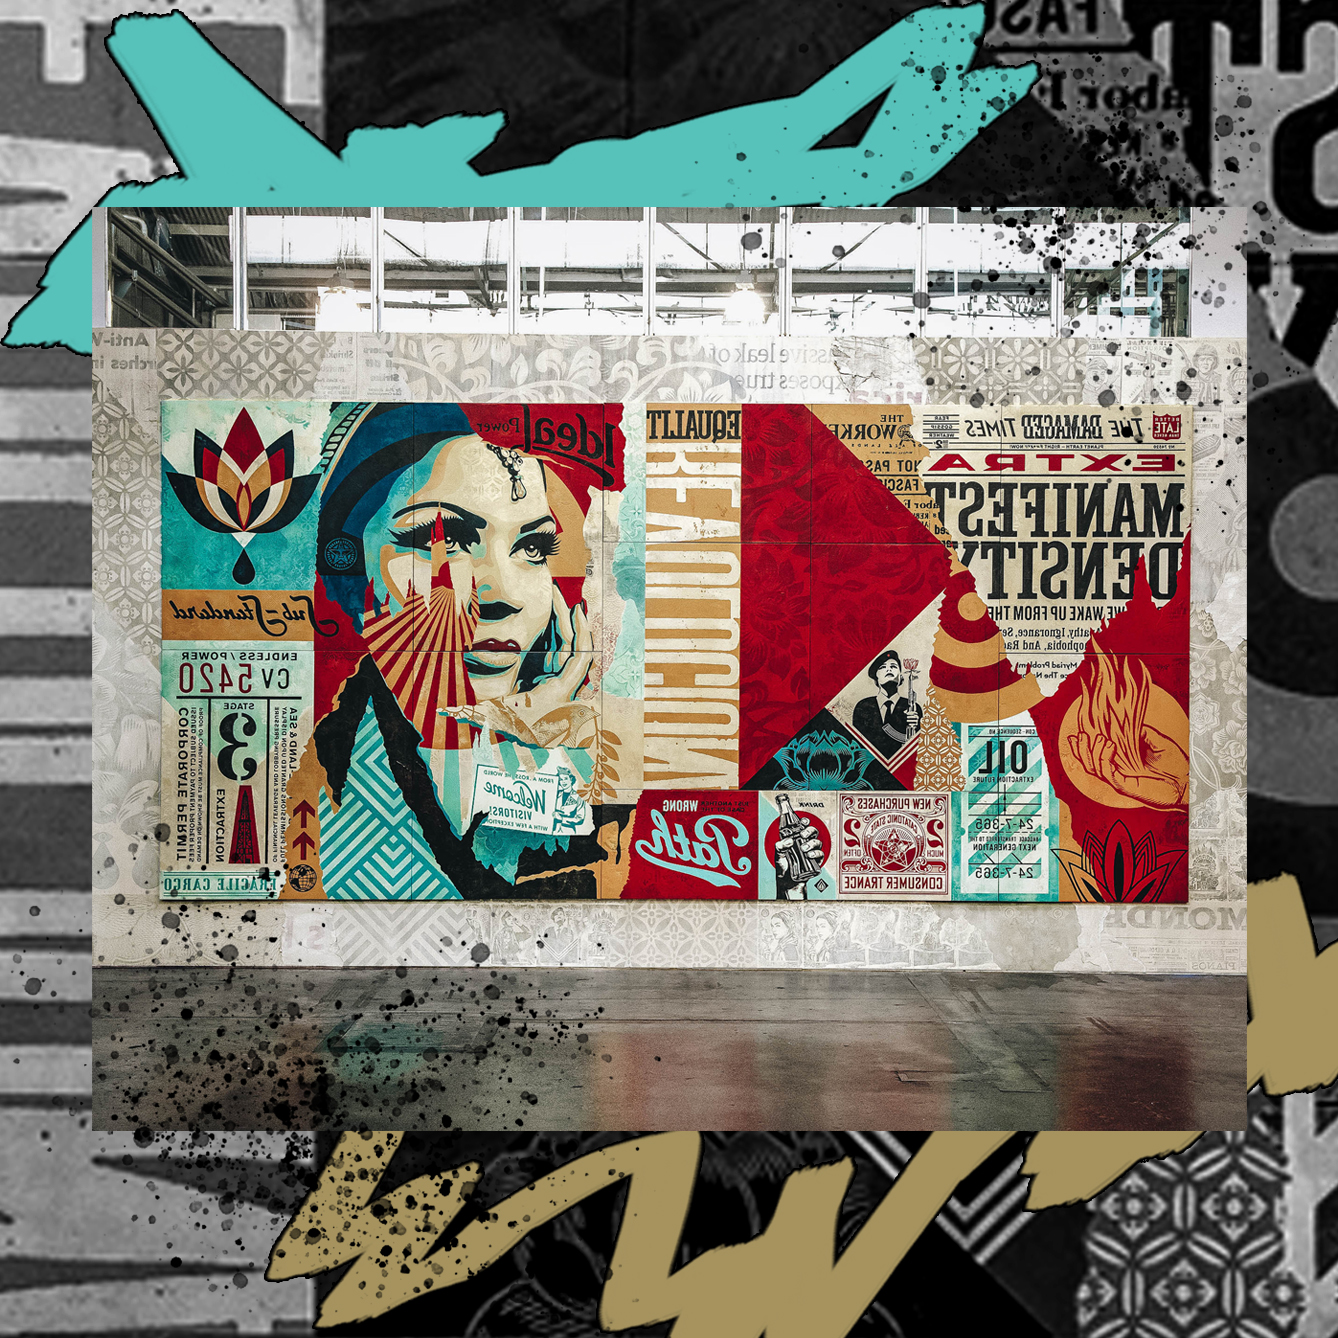 SHEPARD FAIREY'S WORK IS INFUSED WITH SOCIAL COMMENTARY /  DESIGN CREDIT: VANESSA ACOSTA